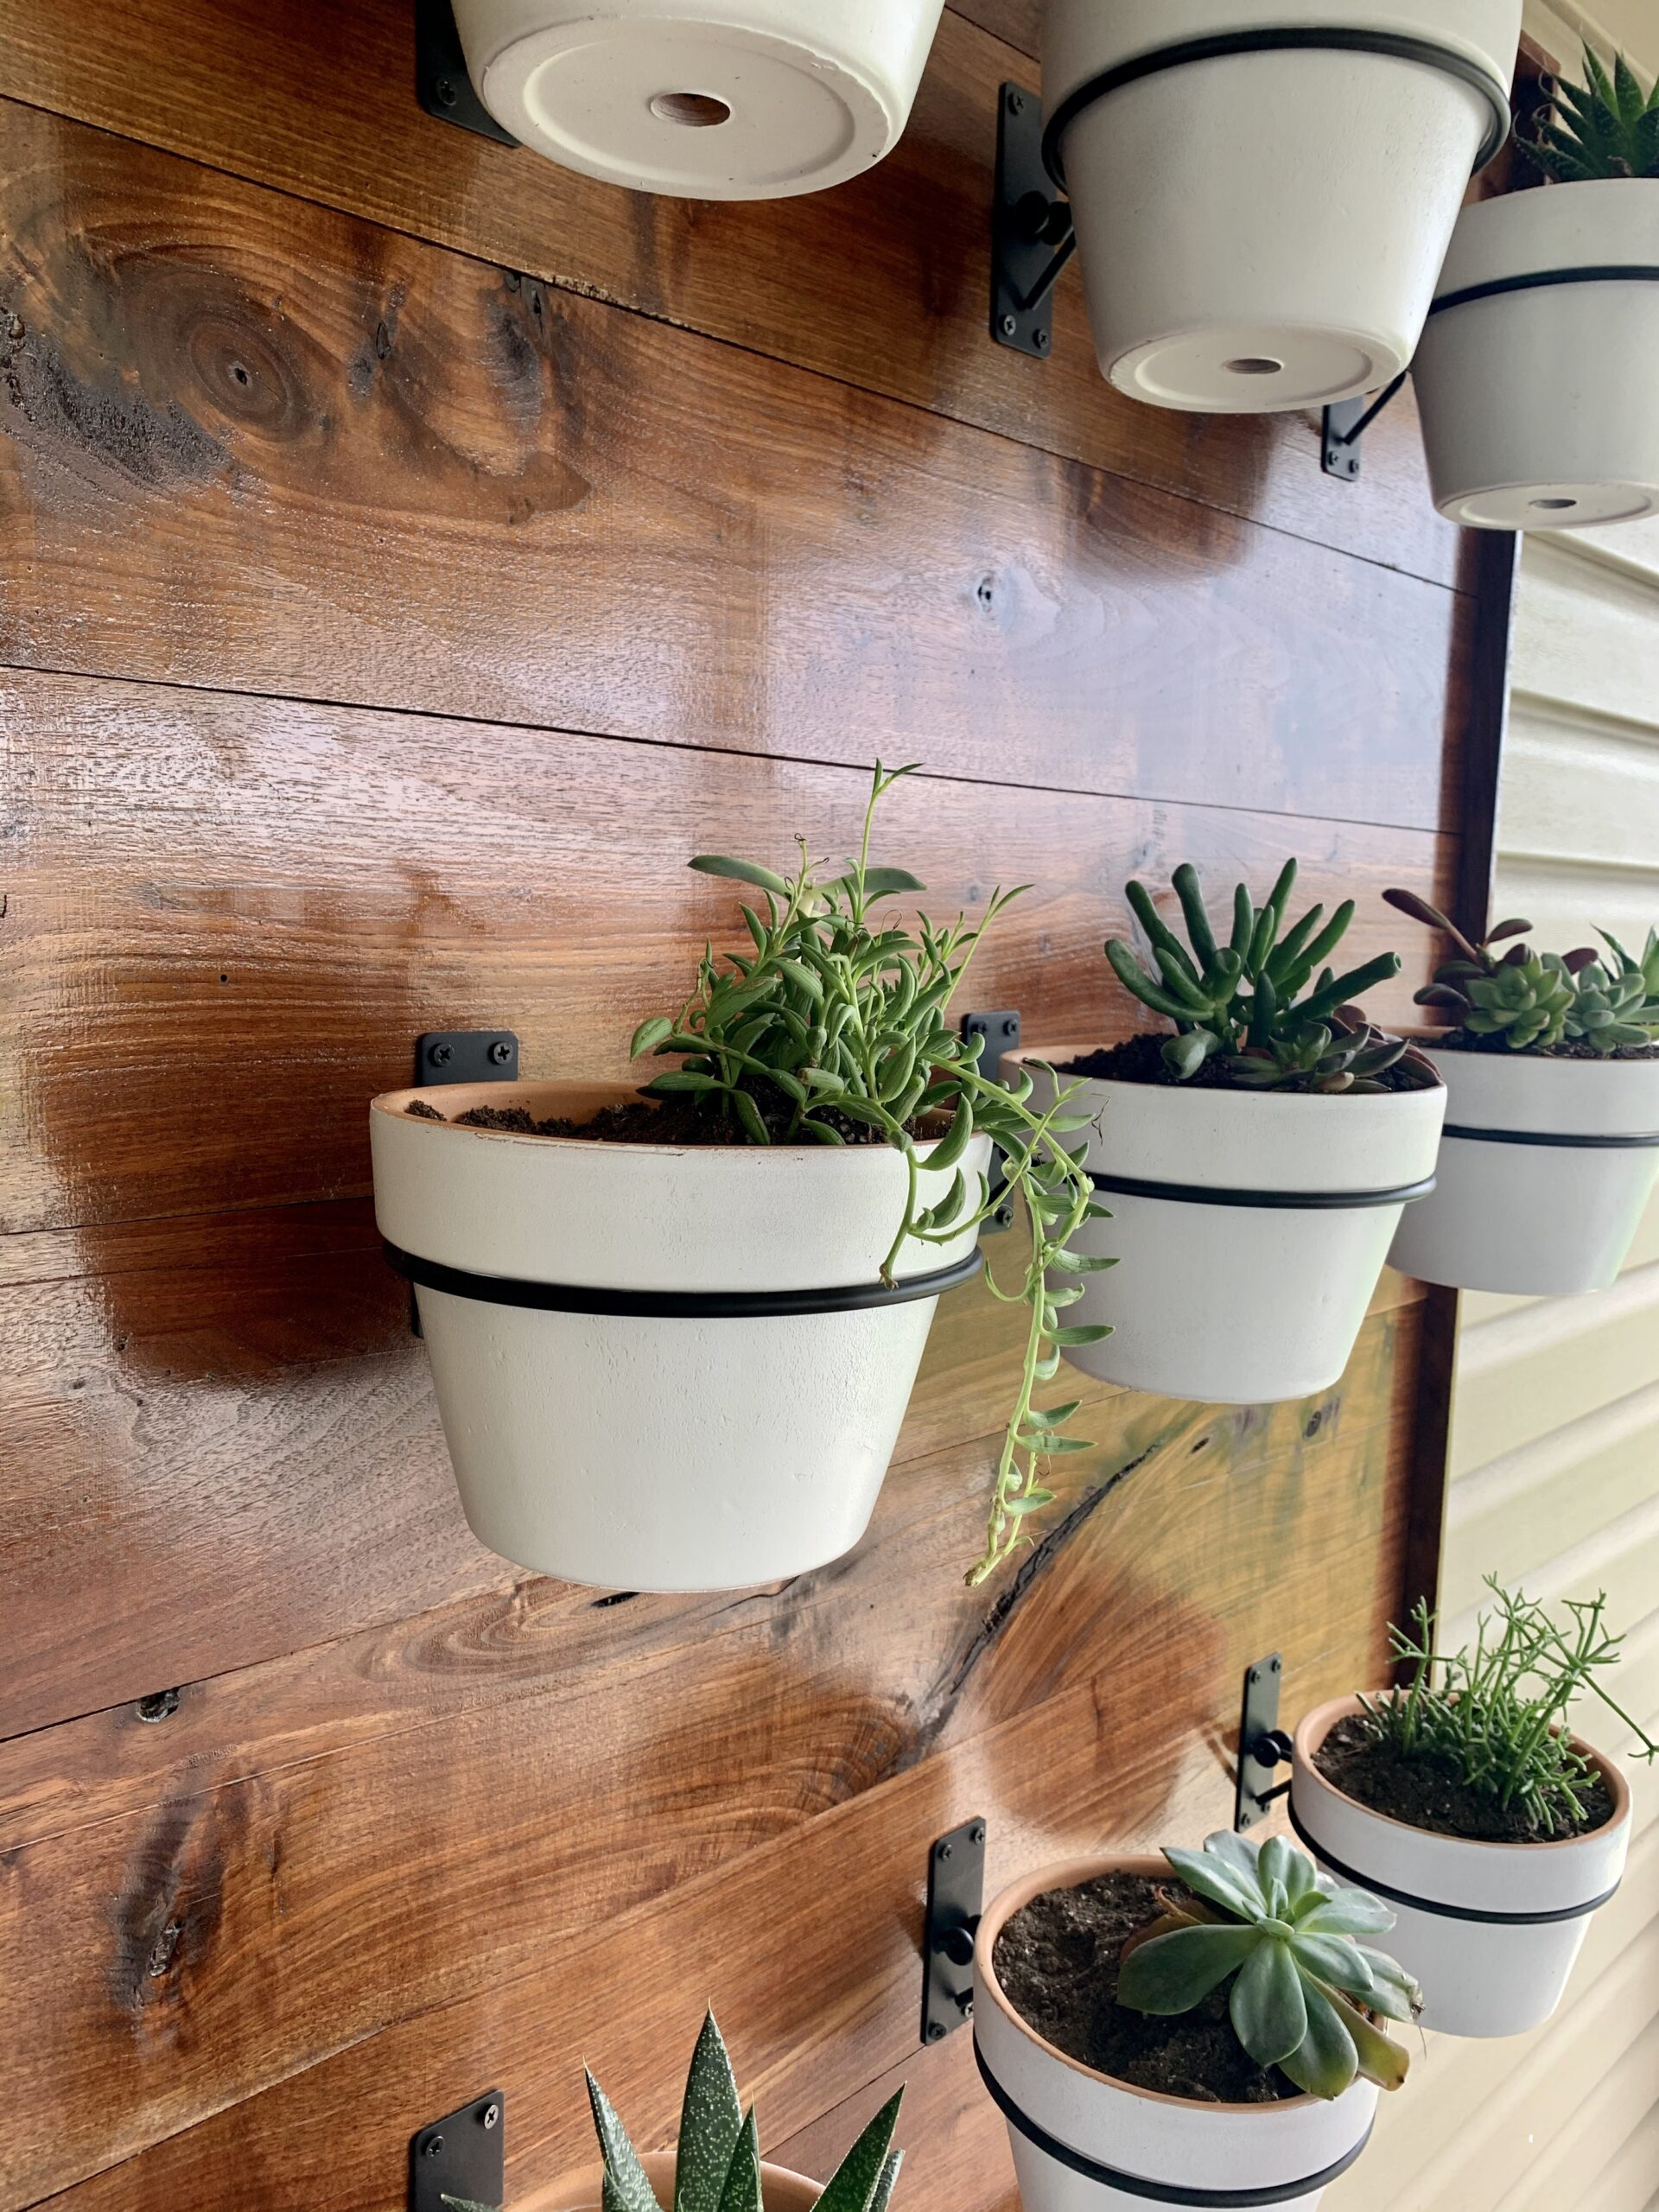 If you are looking for a fun do-it-yourself project, look no further than this easy outdoor succulent wall!